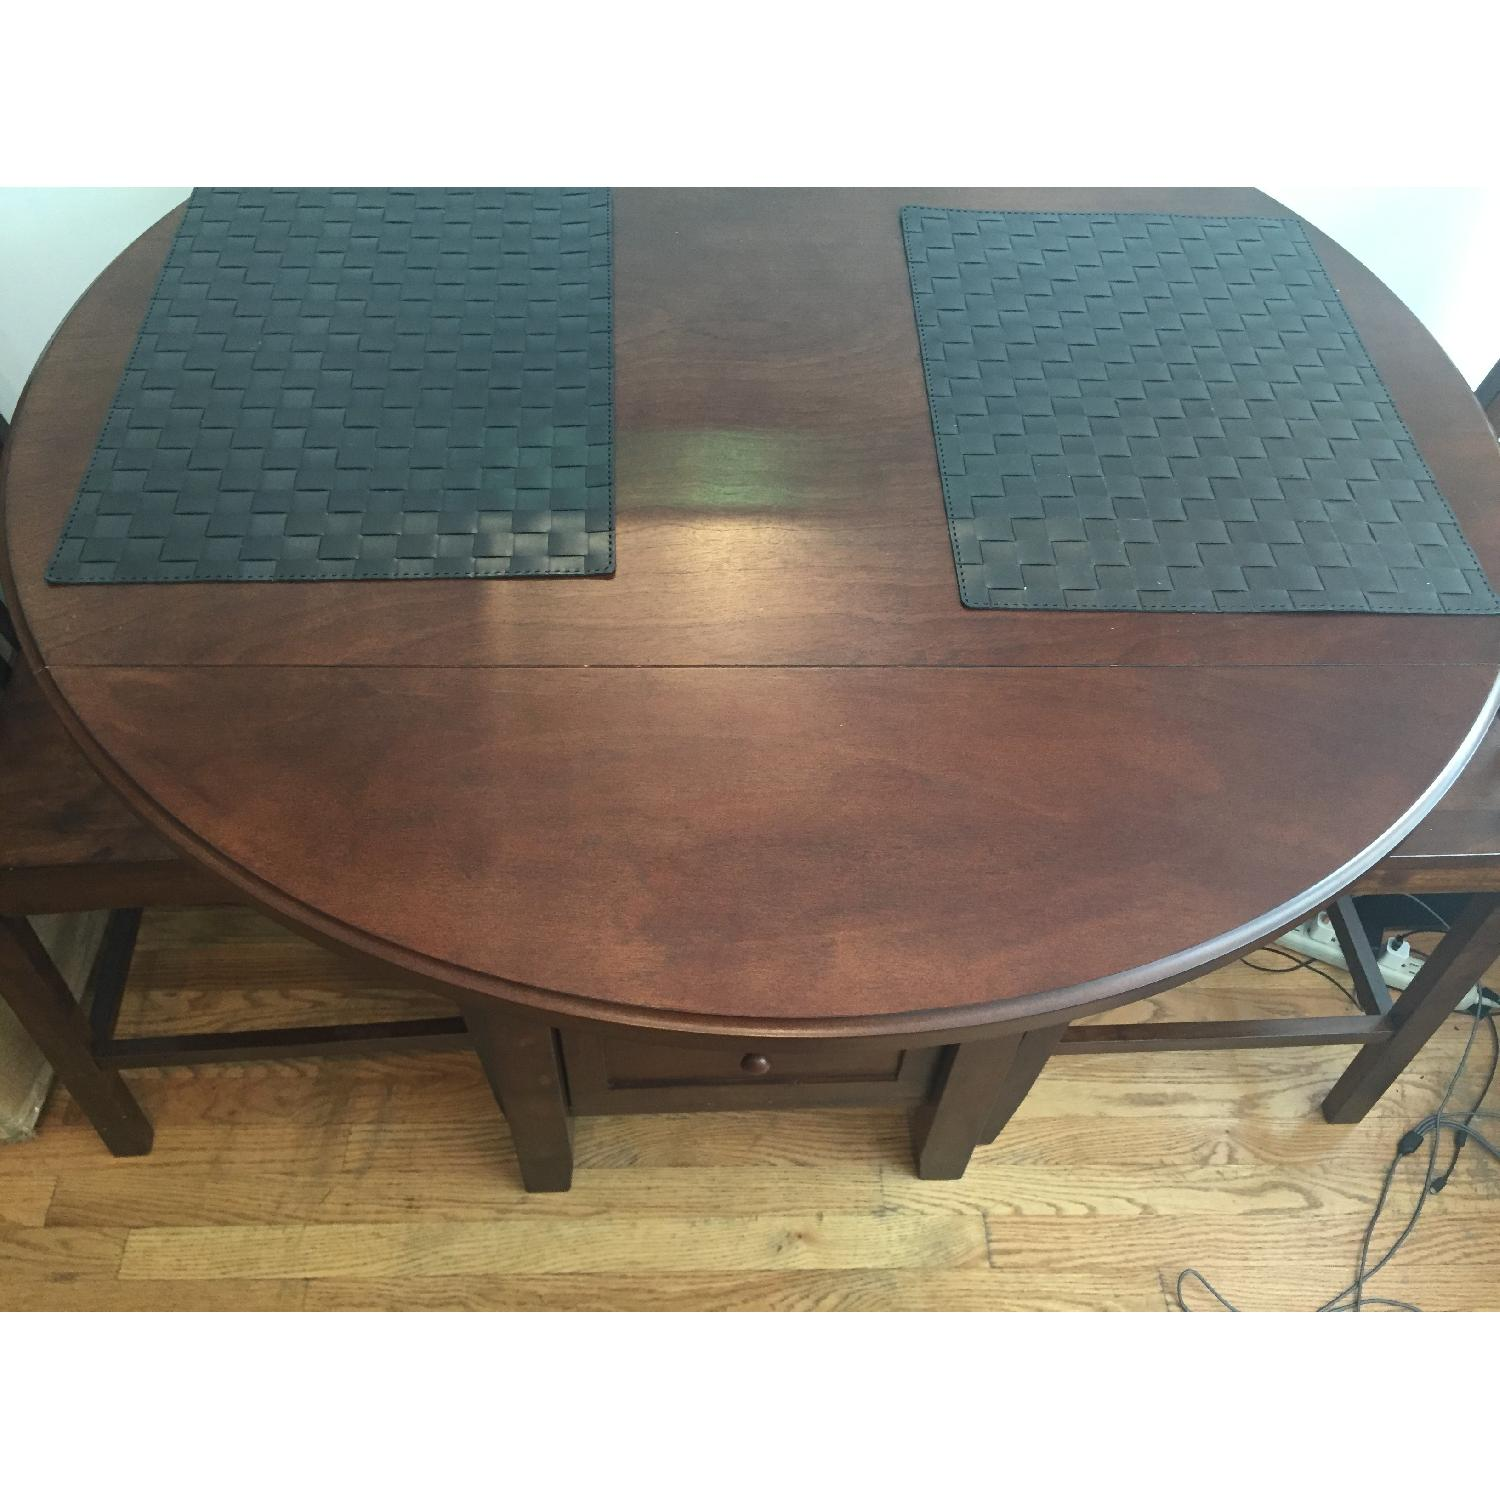 Threshold Wood High Top Table w/ 2 Chairs - image-2